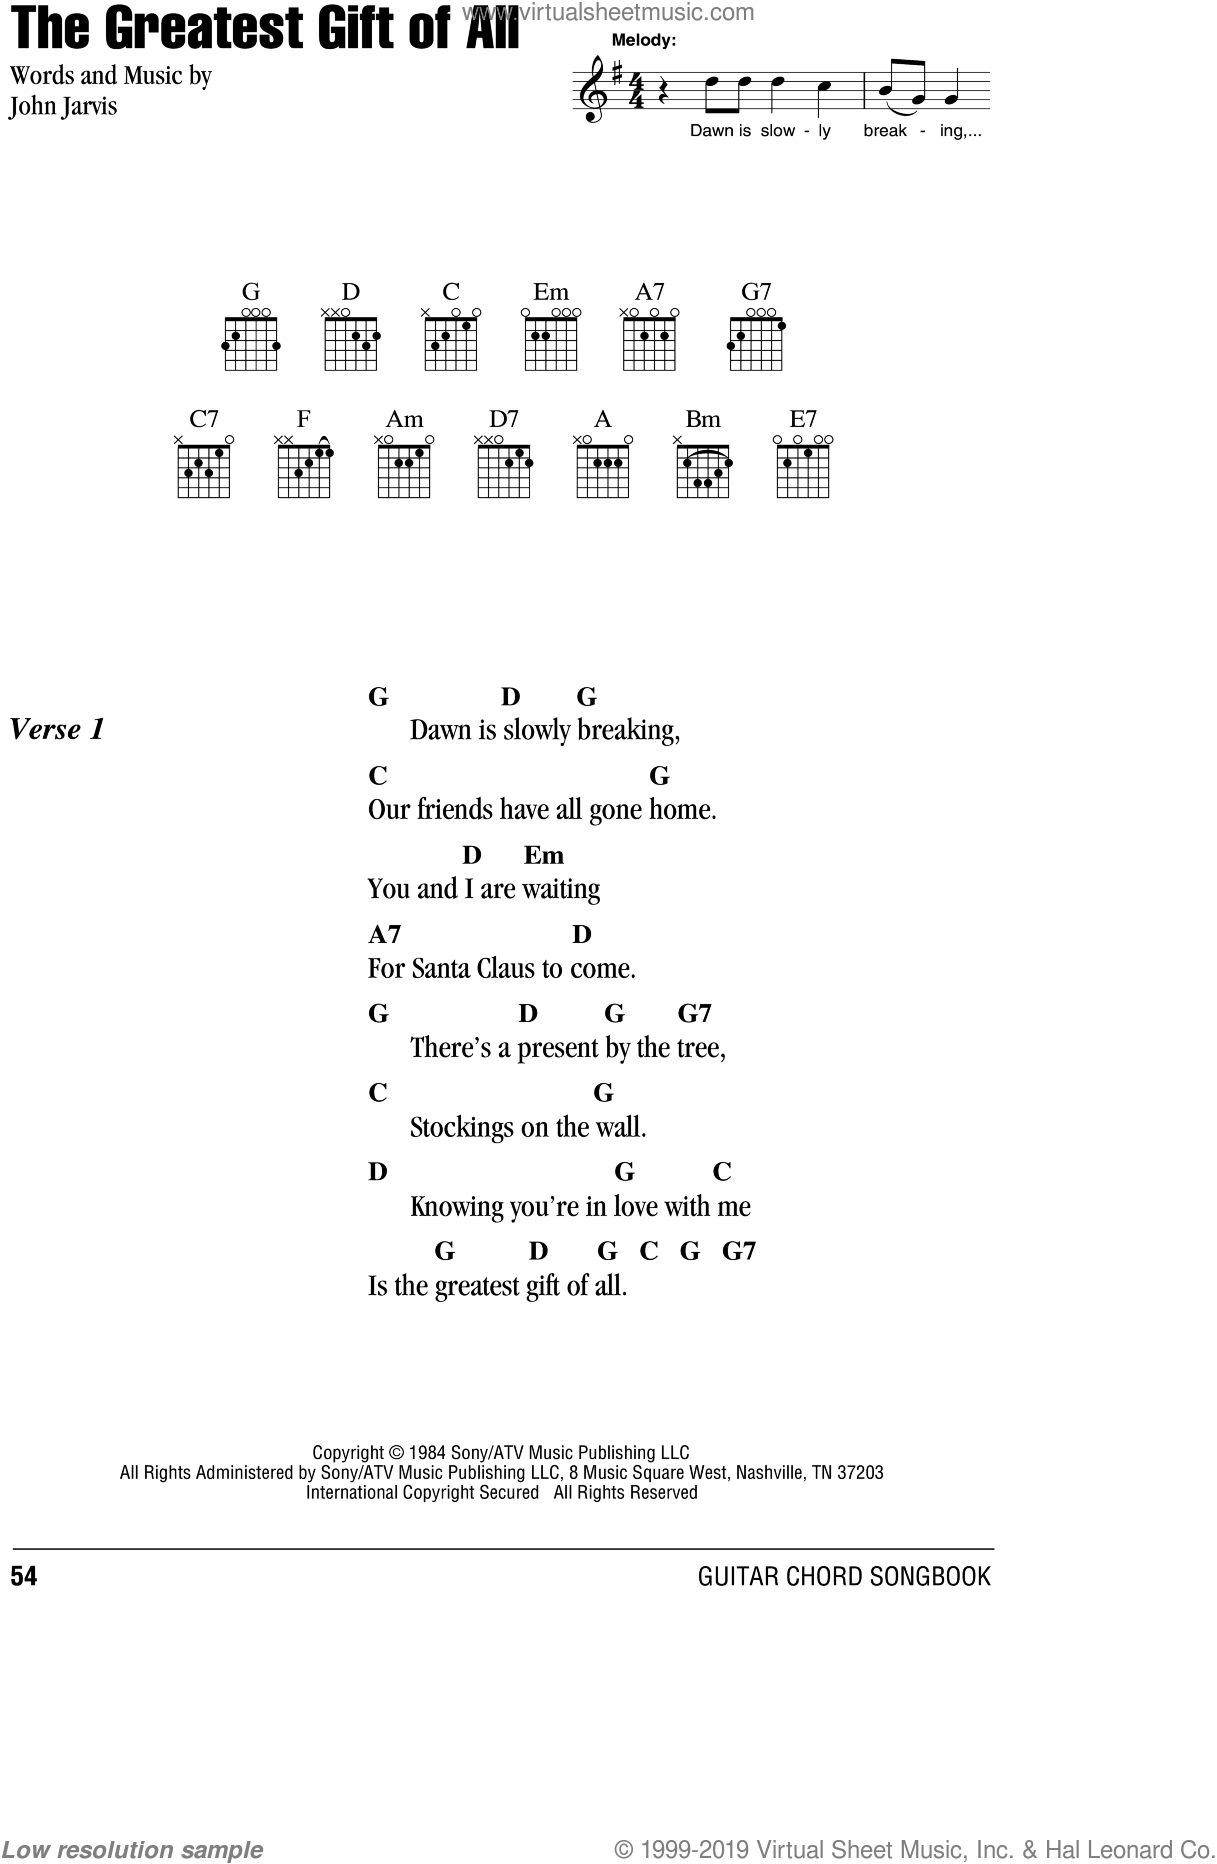 The Greatest Gift Of All sheet music for guitar (chords) by Kenny Rogers and Dolly Parton, Dolly Parton, Kenny Rogers and John Jarvis, Christmas carol score, intermediate guitar (chords). Score Image Preview.